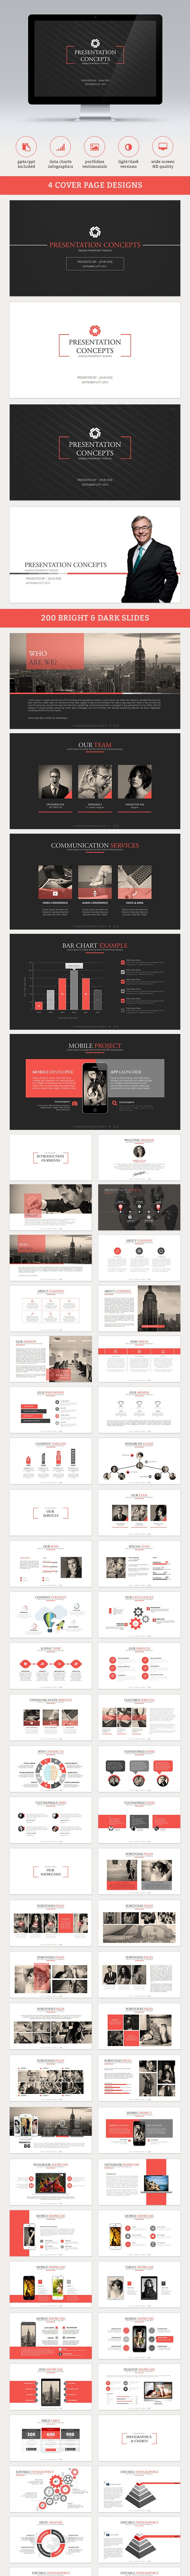 Axis Powerpoint Template - Business PowerPoint Templates